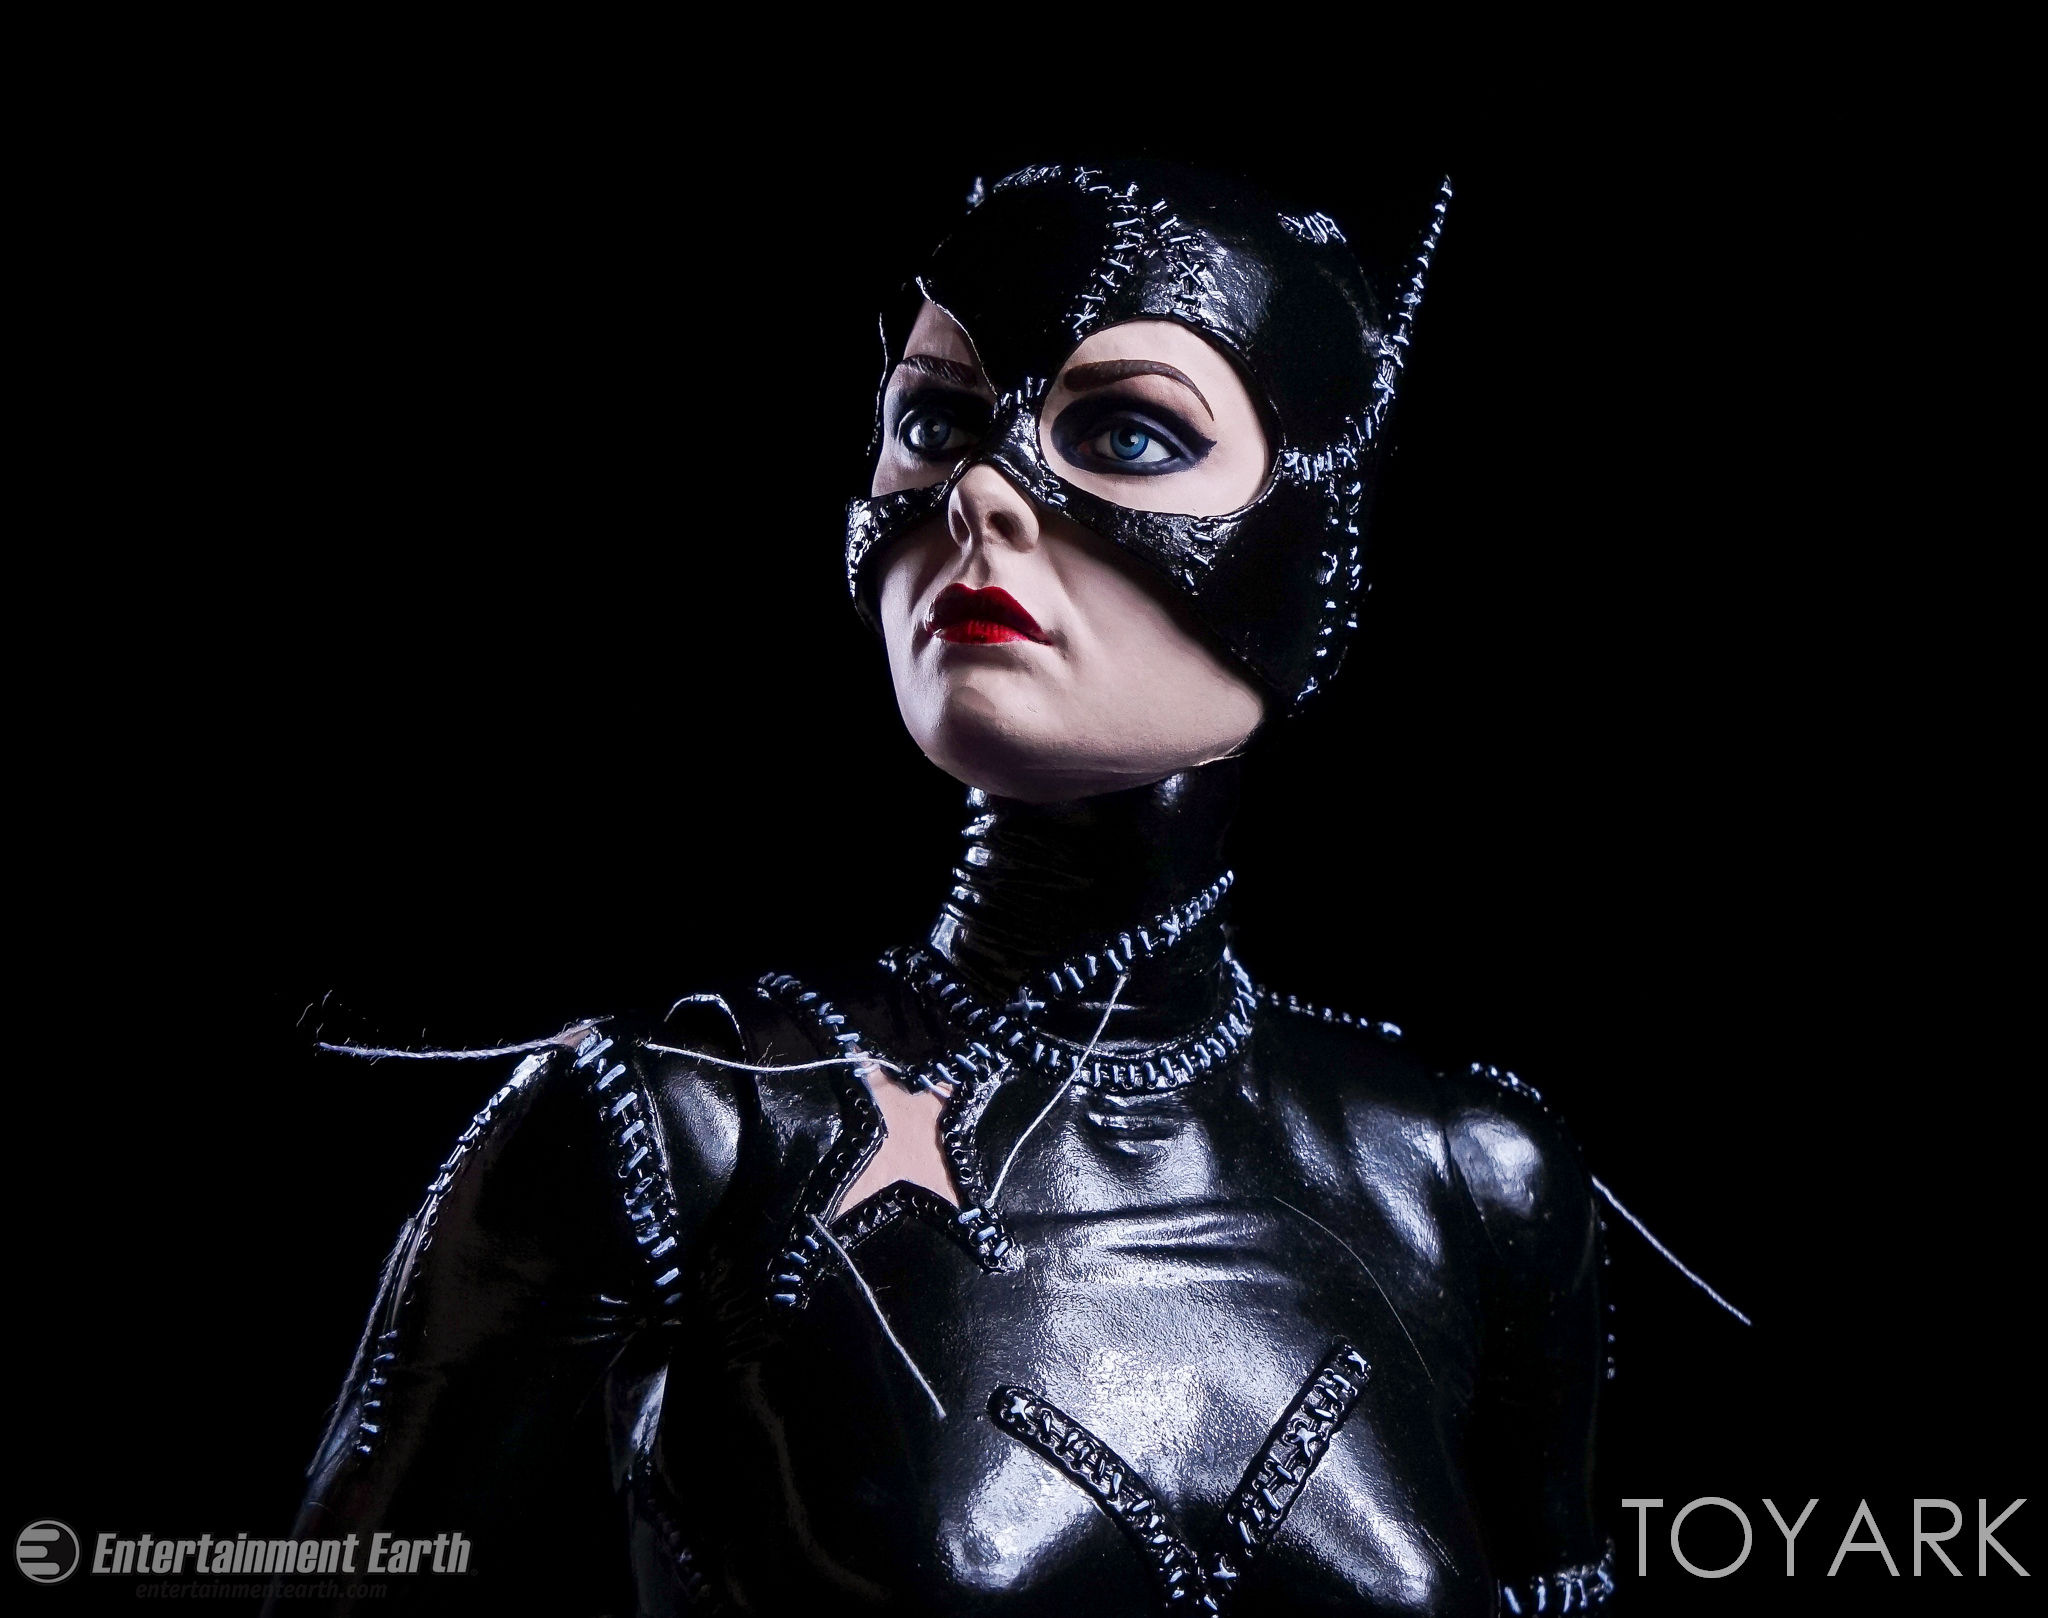 http://news.toyark.com/wp-content/uploads/sites/4/2017/03/NECA-Batman-Returns-Catwoman-046.jpg